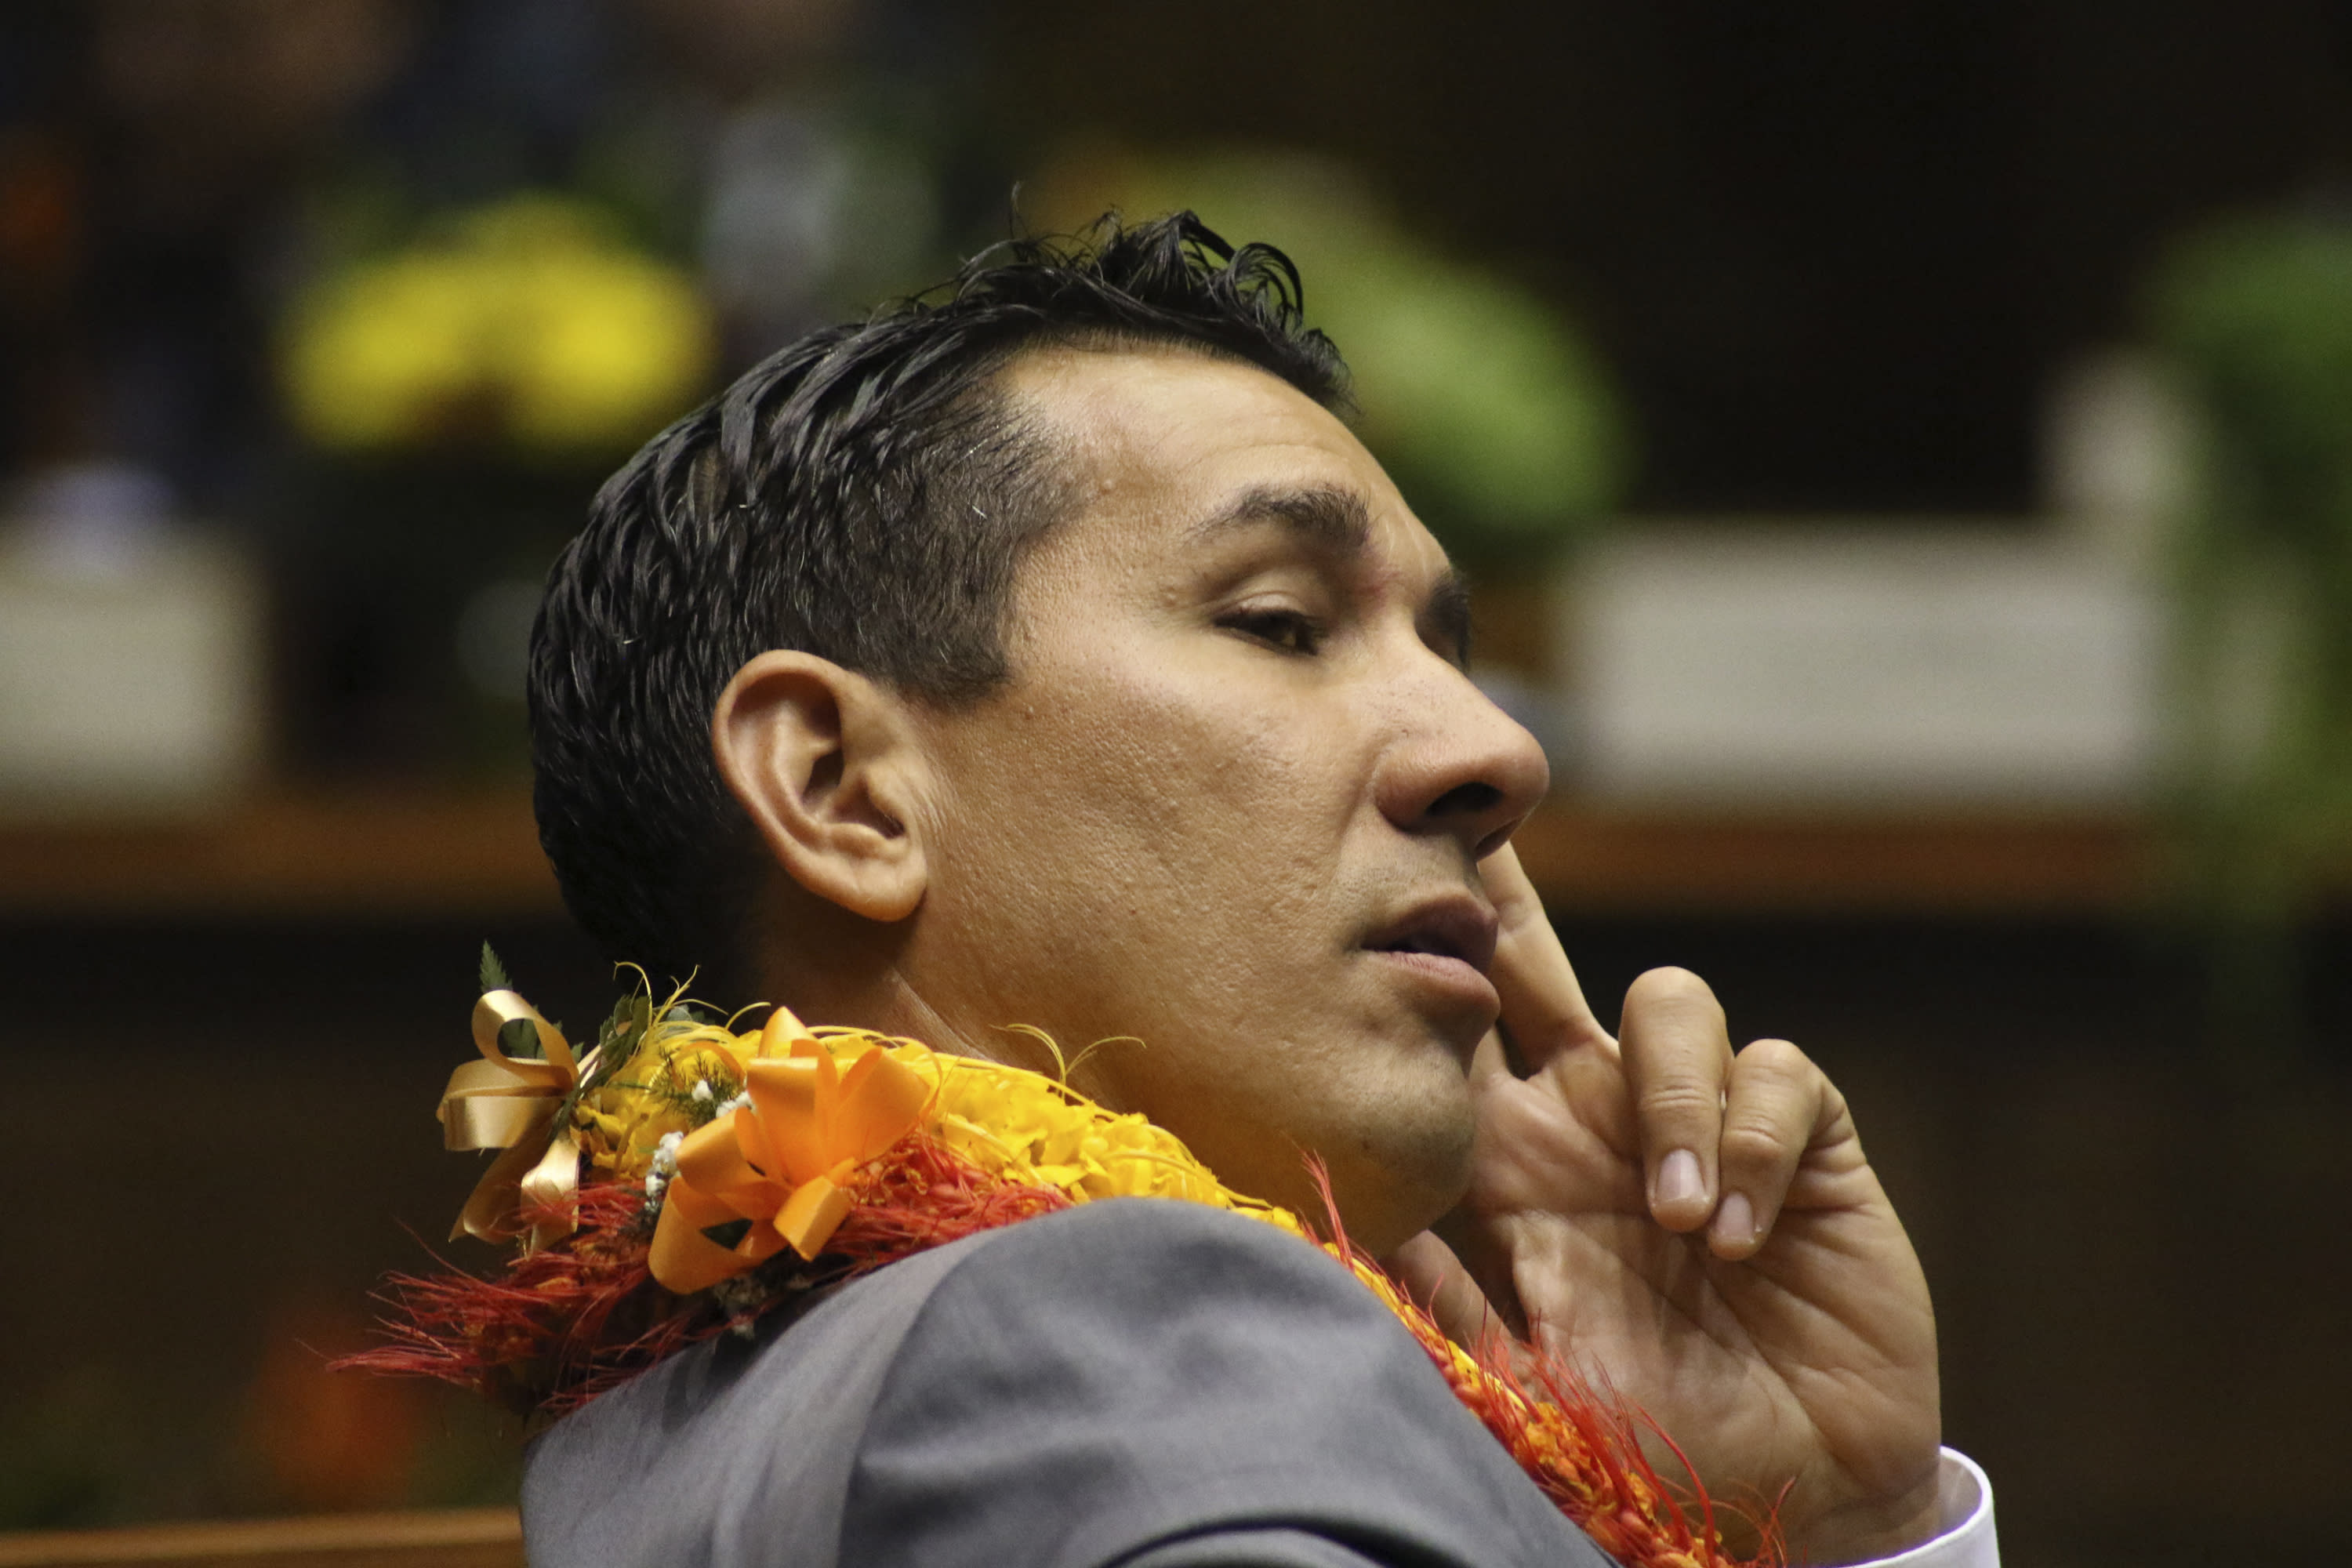 FILE -- In this Jan. 15, 2020 file photo, is state Sen. Kai Kahele at the opening day of the Hawaii Sate Legislature in Honolulu. Kahele is the only major candidate in the race to succeed U.S. Rep. Tulsi Gabbard, virtually guaranteeing he will be sworn in as Hawaii's newest congressman in January. (AP Photo/Audrey McAvoy, File)